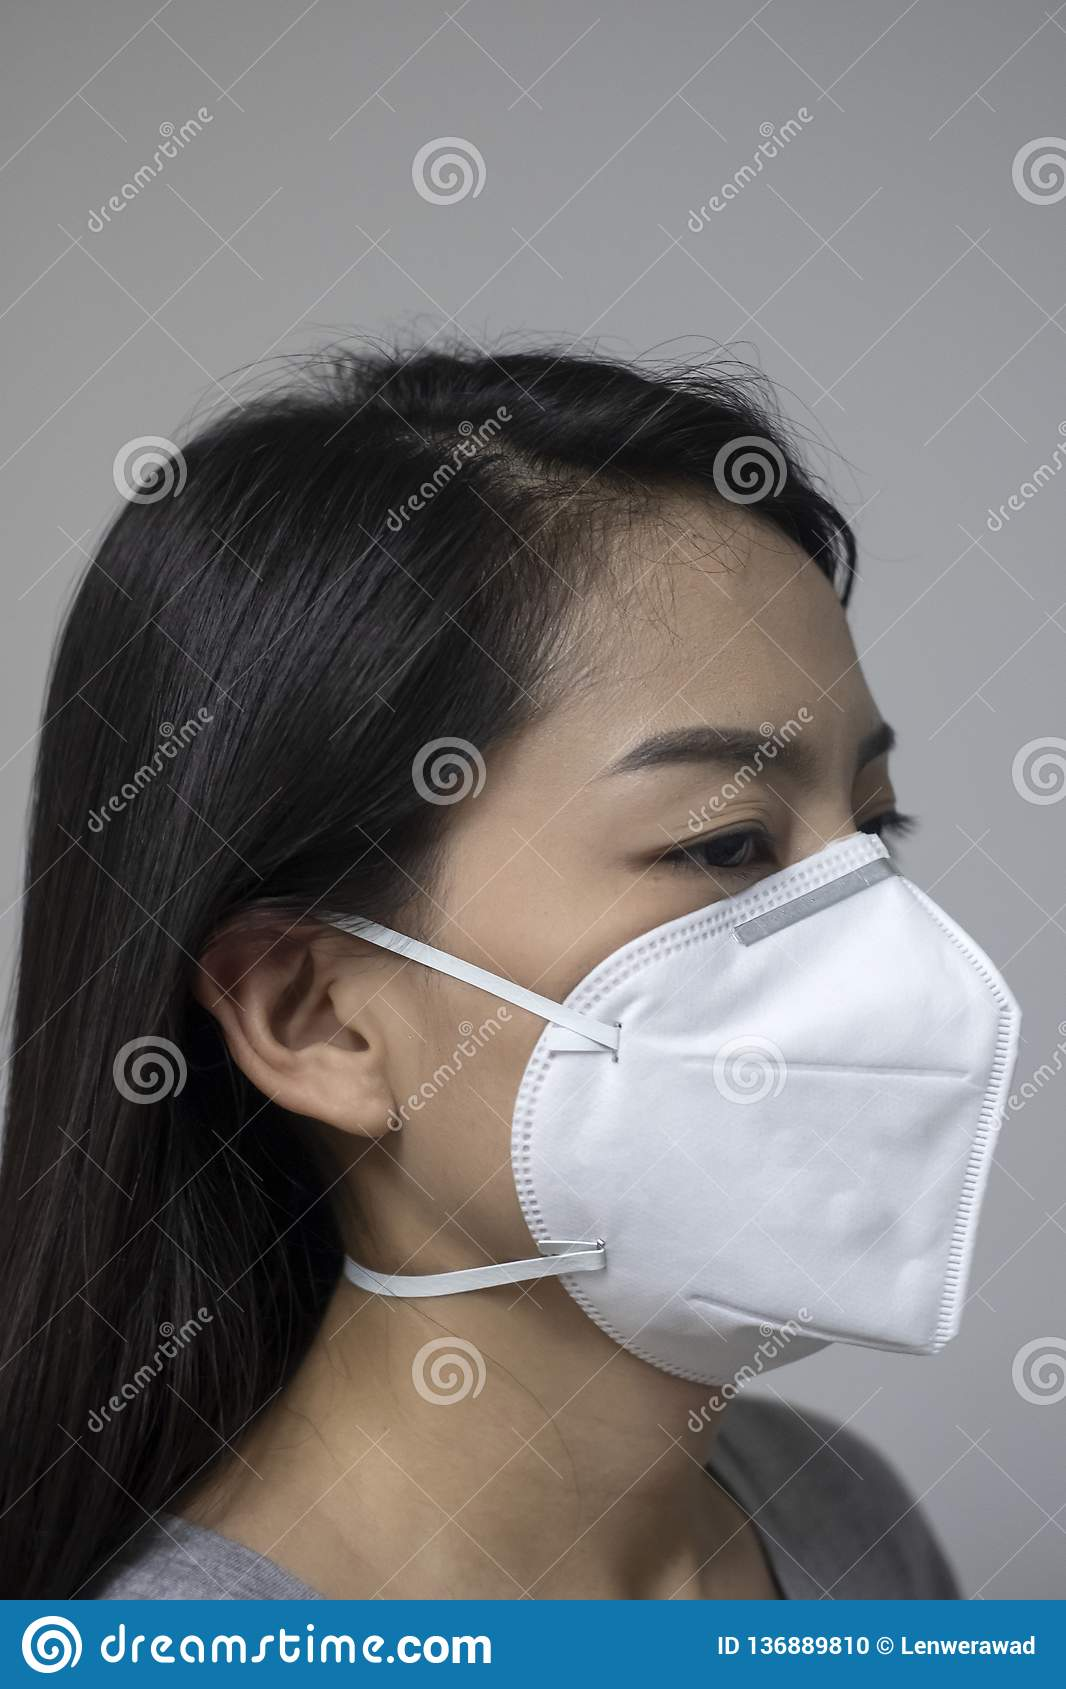 Woman Air In Mask Face Wearing Because Pollution N95 Of The